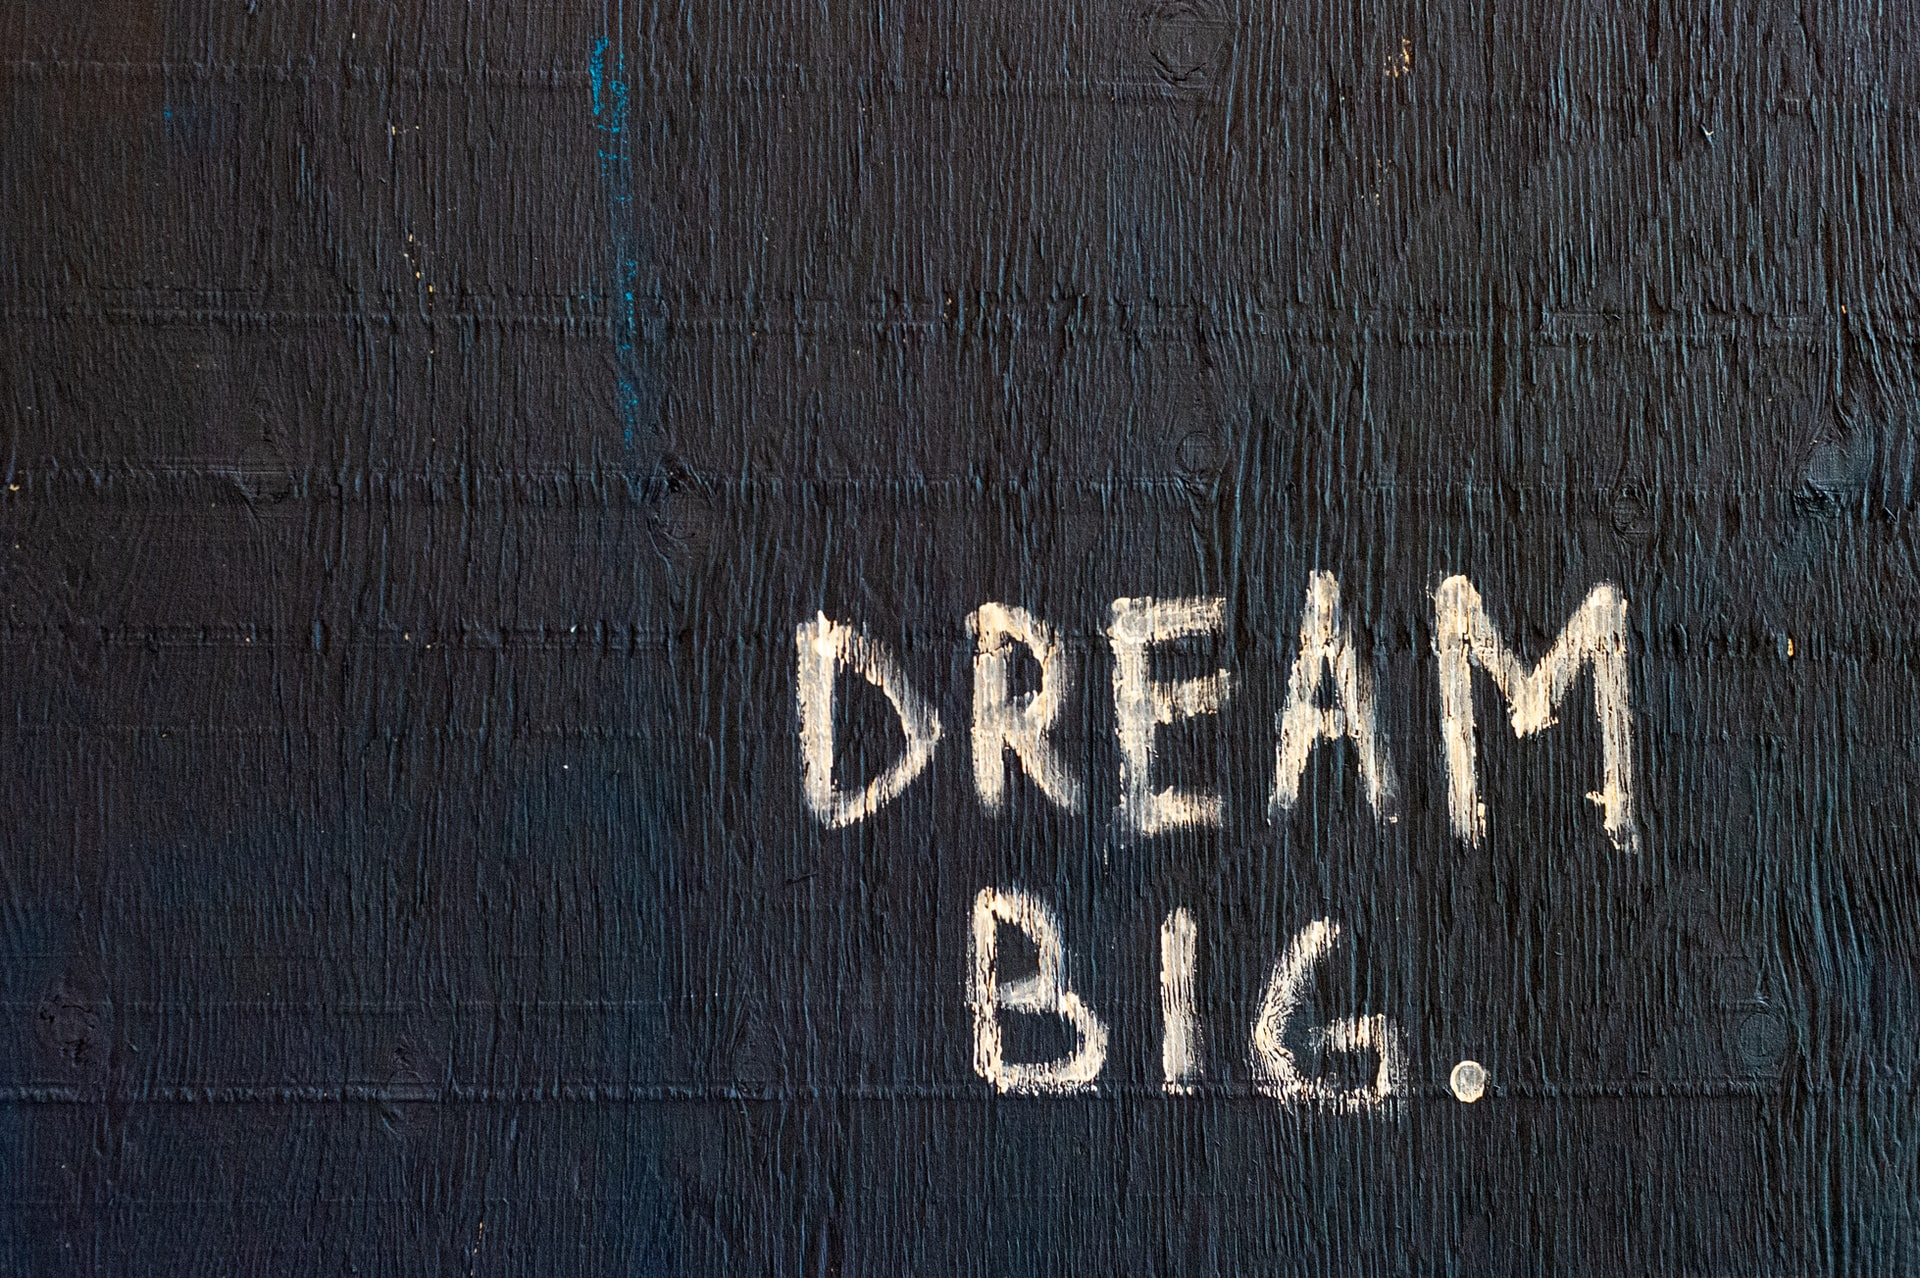 dream big frase como ter mais motivaçao na vida